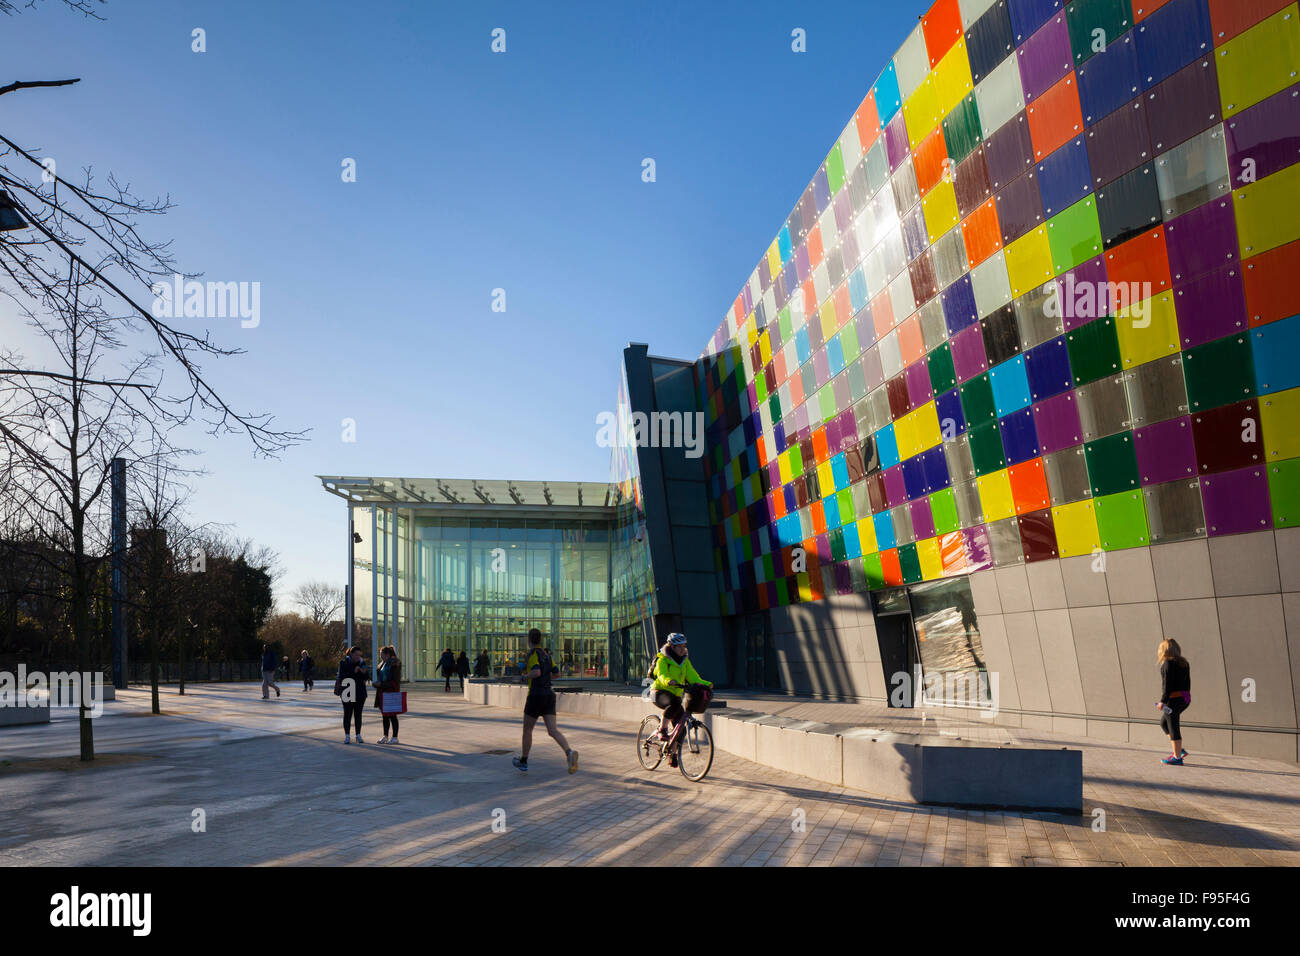 The Glass Mill Leisure Centre is situated on the lowest three floors of a 27 storey apartment building in Lewisham. - Stock Image